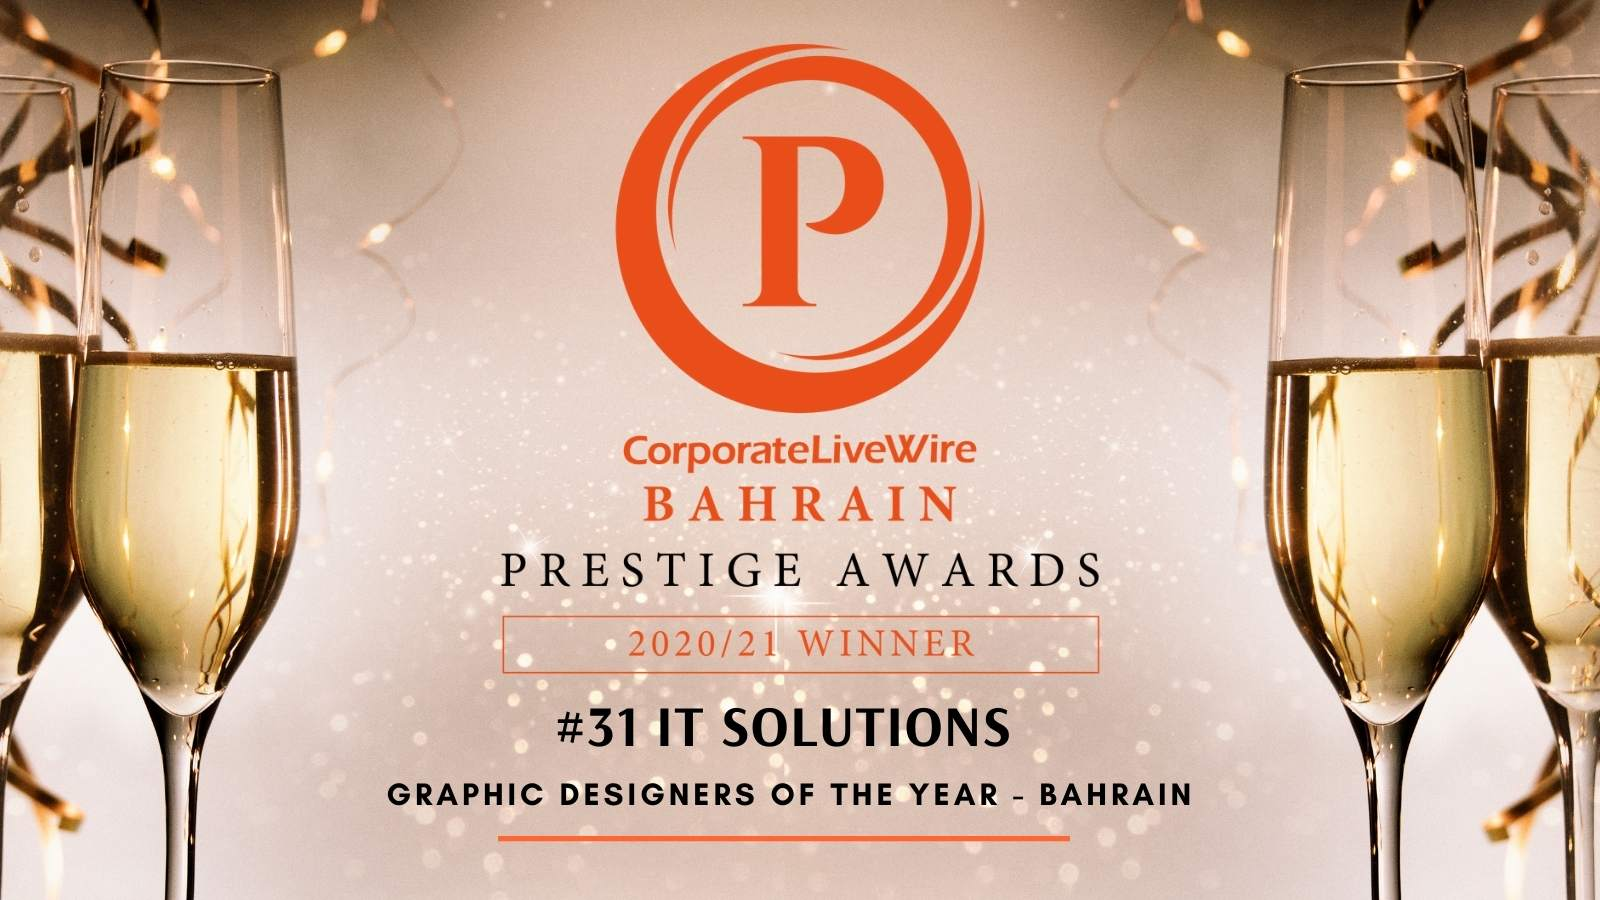 CorporateLiveWire Bahrain Prestigious Awards 2020/21 in the Category; Graphic Designer of the year - Bahrain.